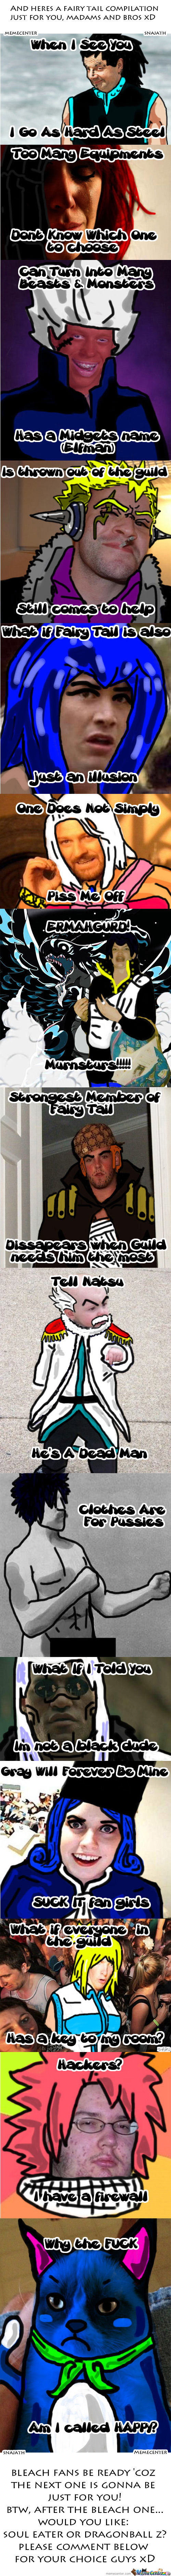 'create Your Own Fairy Tail Compilation And You Will Become The Greatest Mage Ever'- Makarov